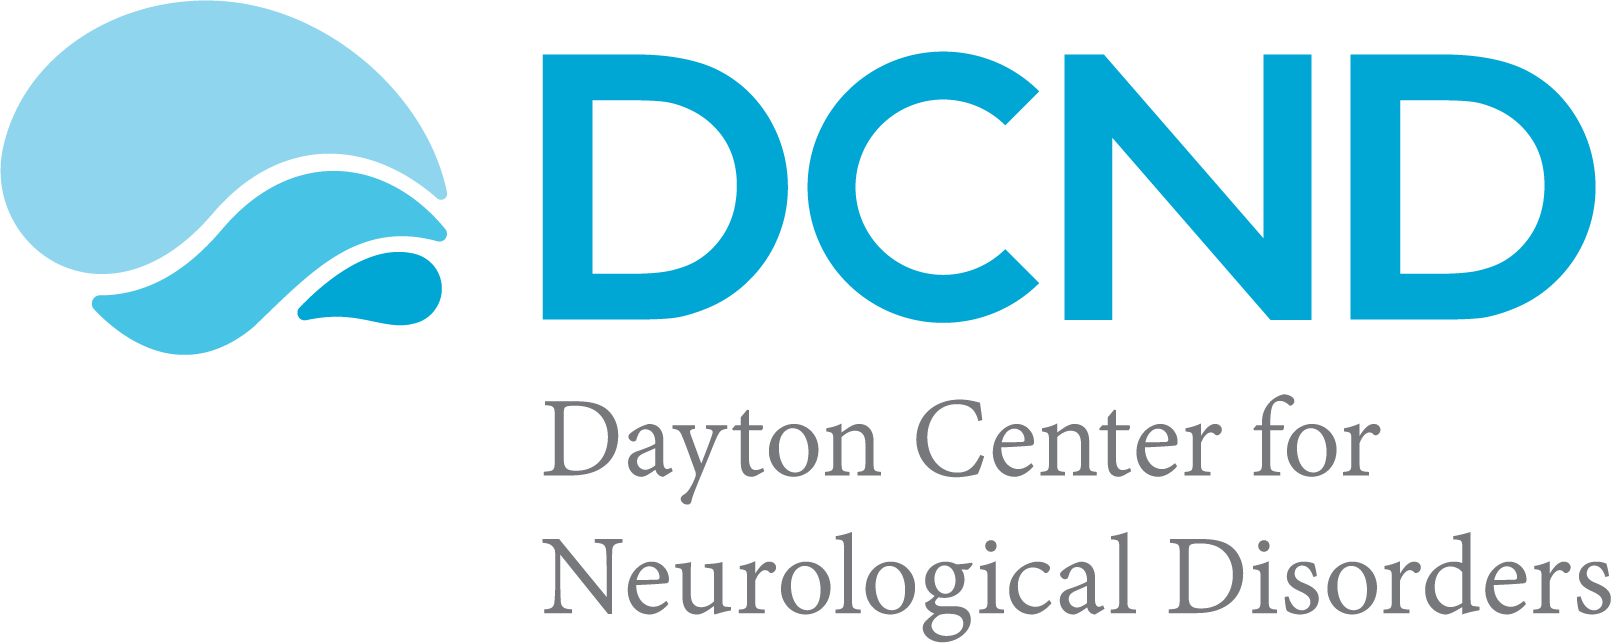 Dayton Center for Neurological Disorders